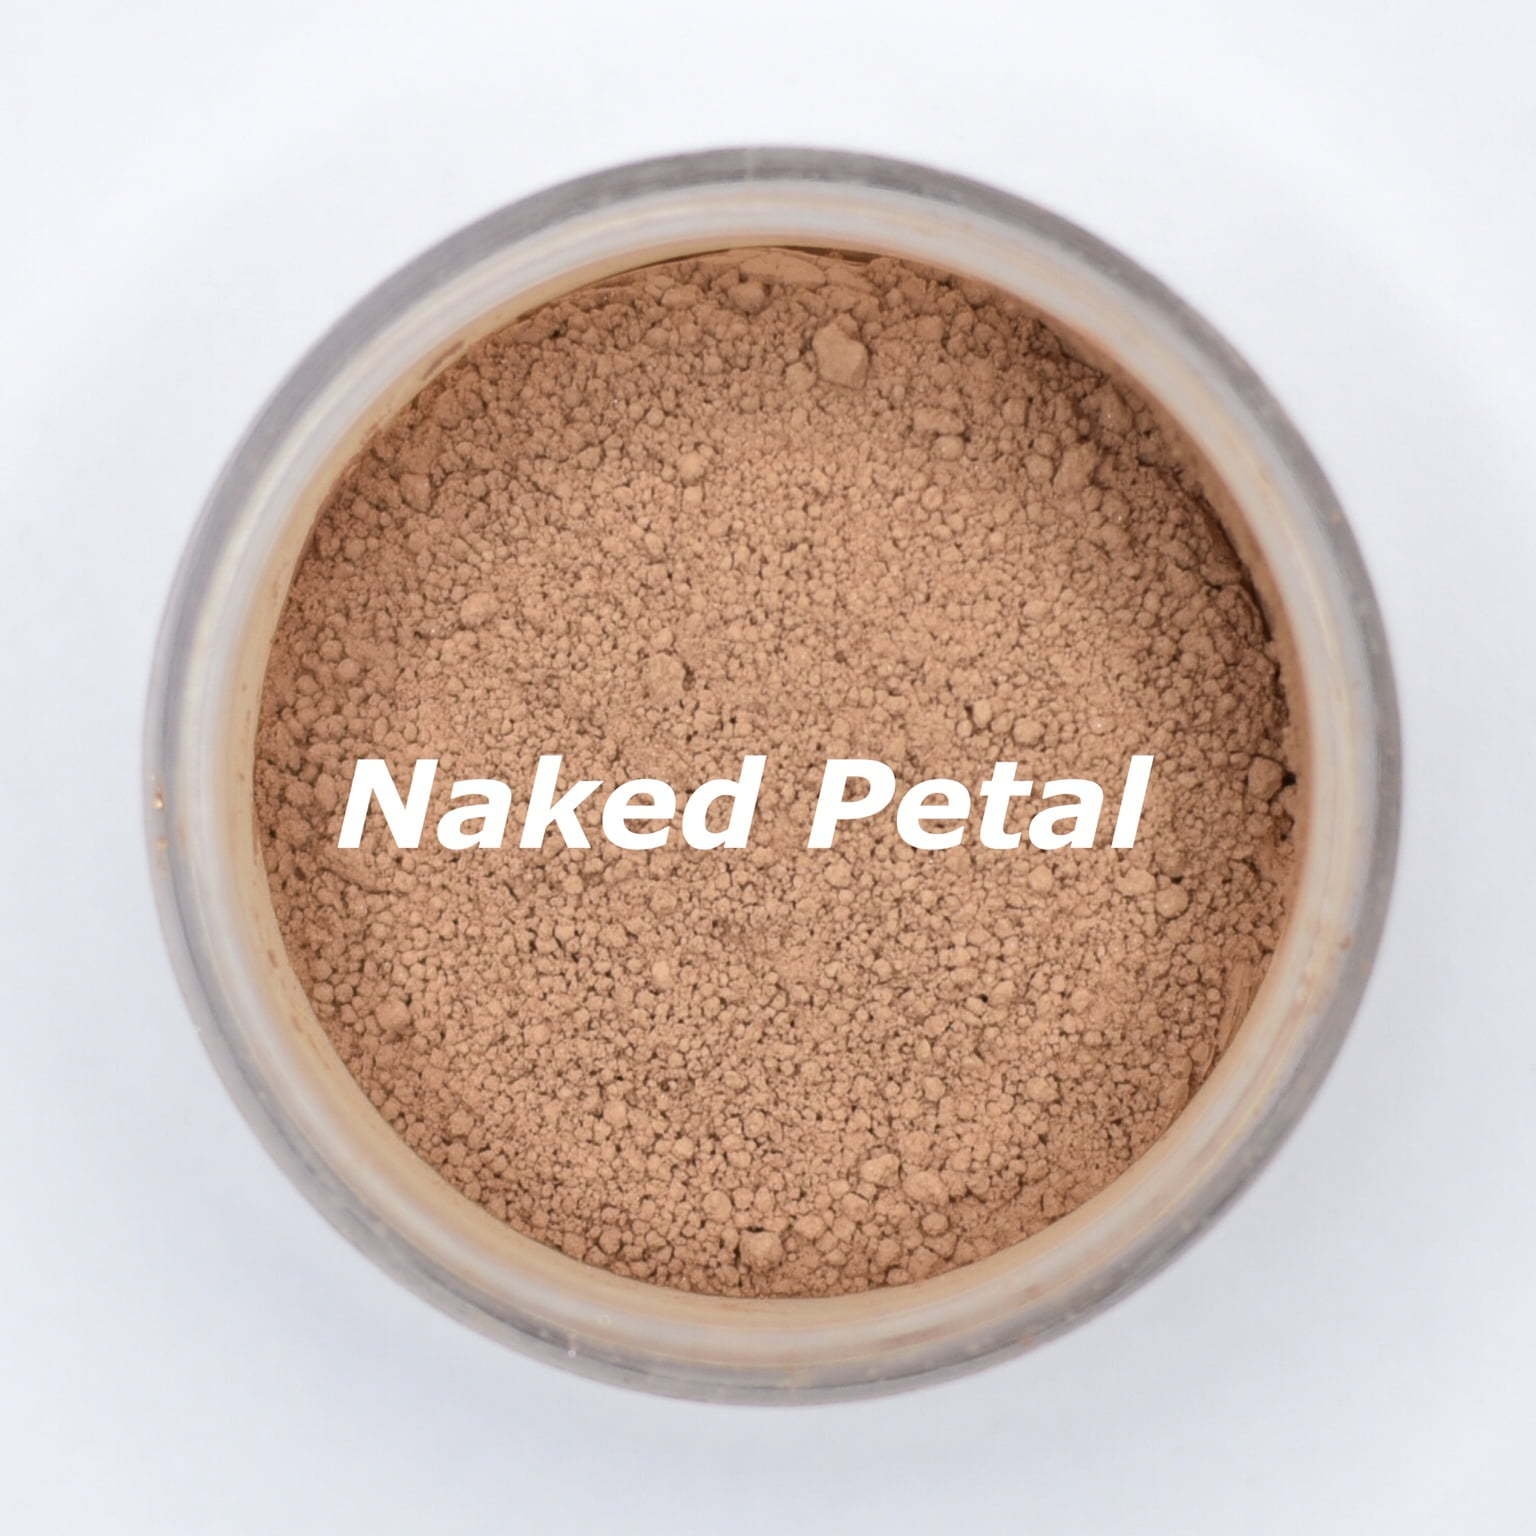 naked petal foundation shade